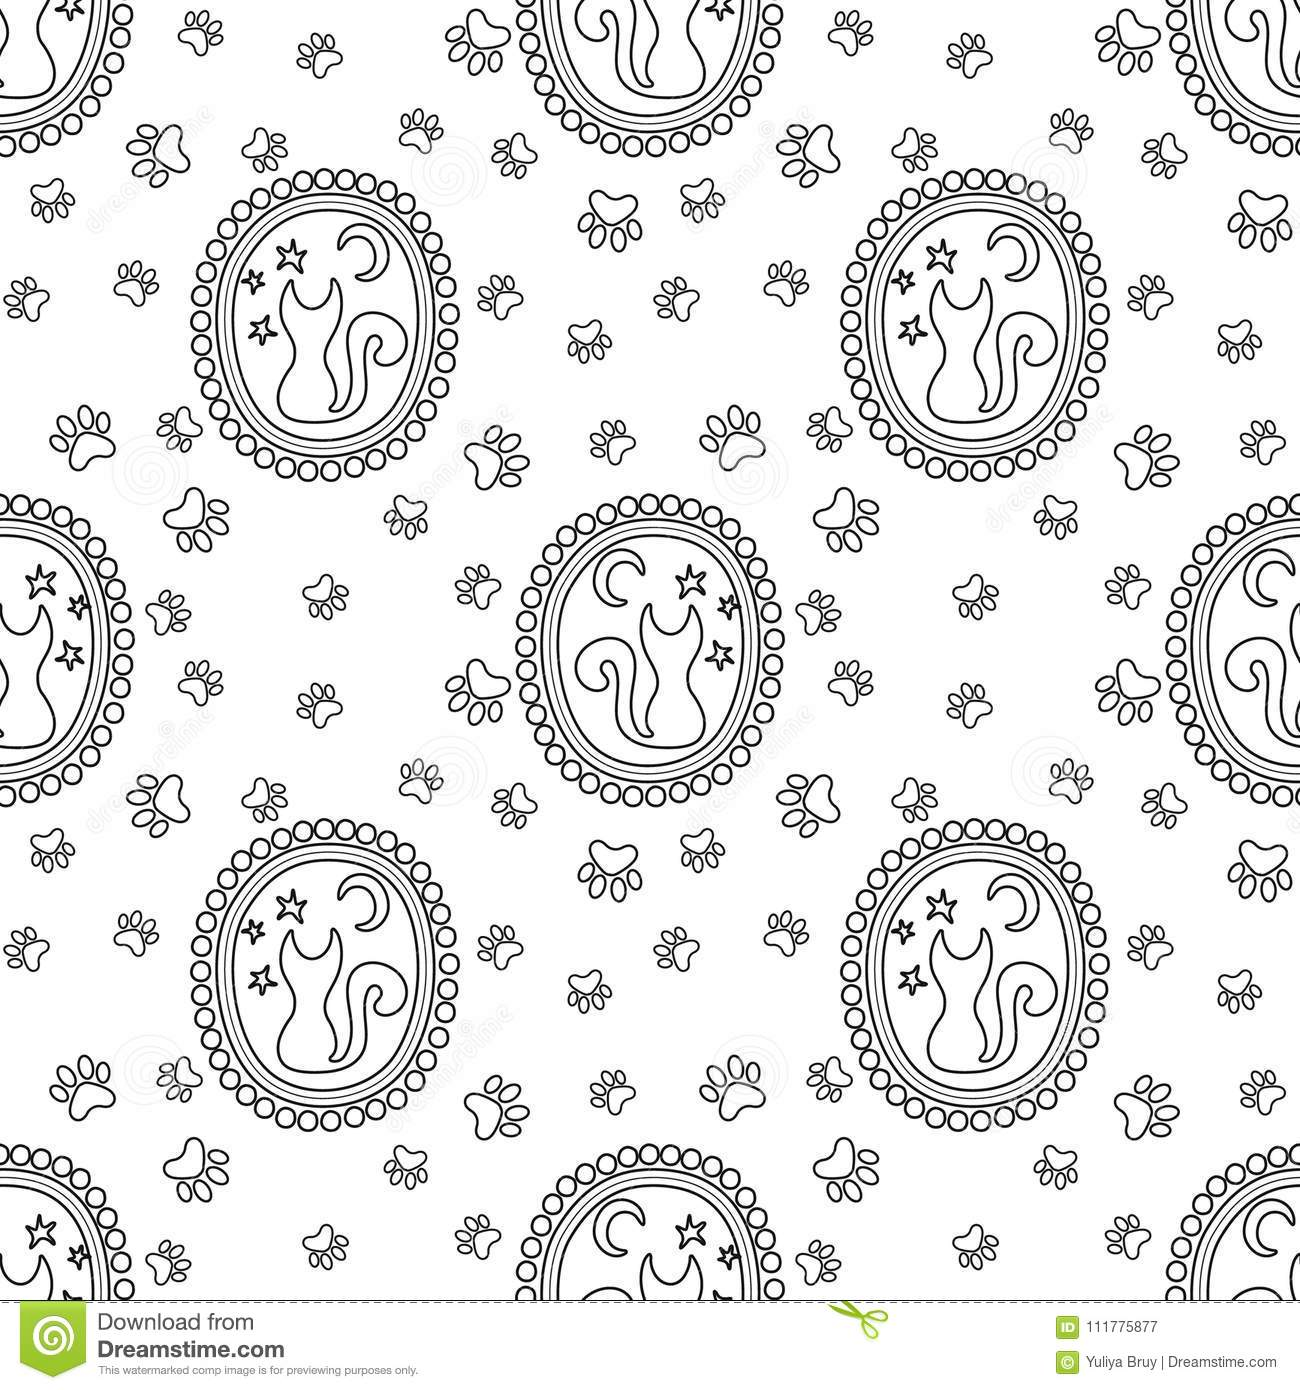 Picture of a cat in a medallion. Seamless pattern. Vector illustration